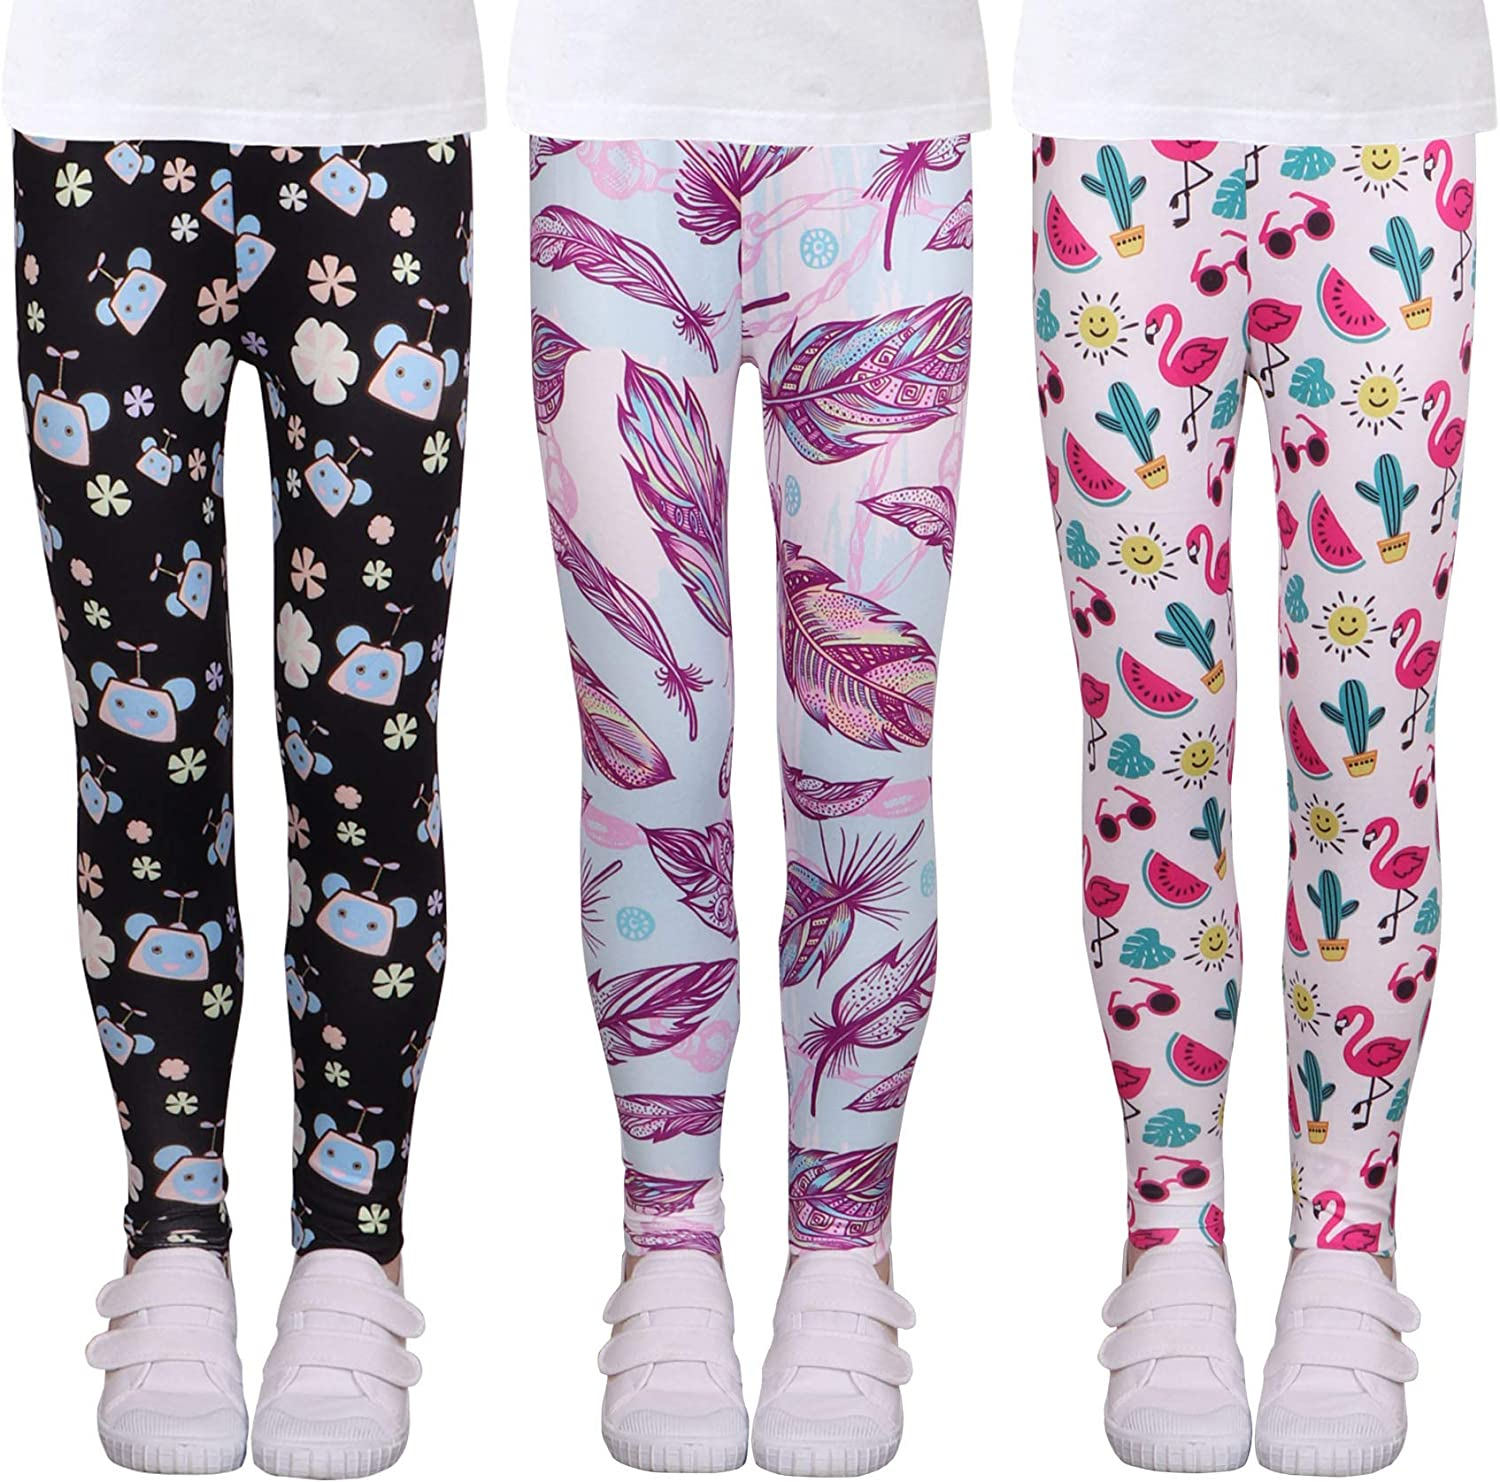 LUOUSE Multipack Cute Printed Girls quality assurance 1 year warranty Stretch Lengt Ankle Leggings